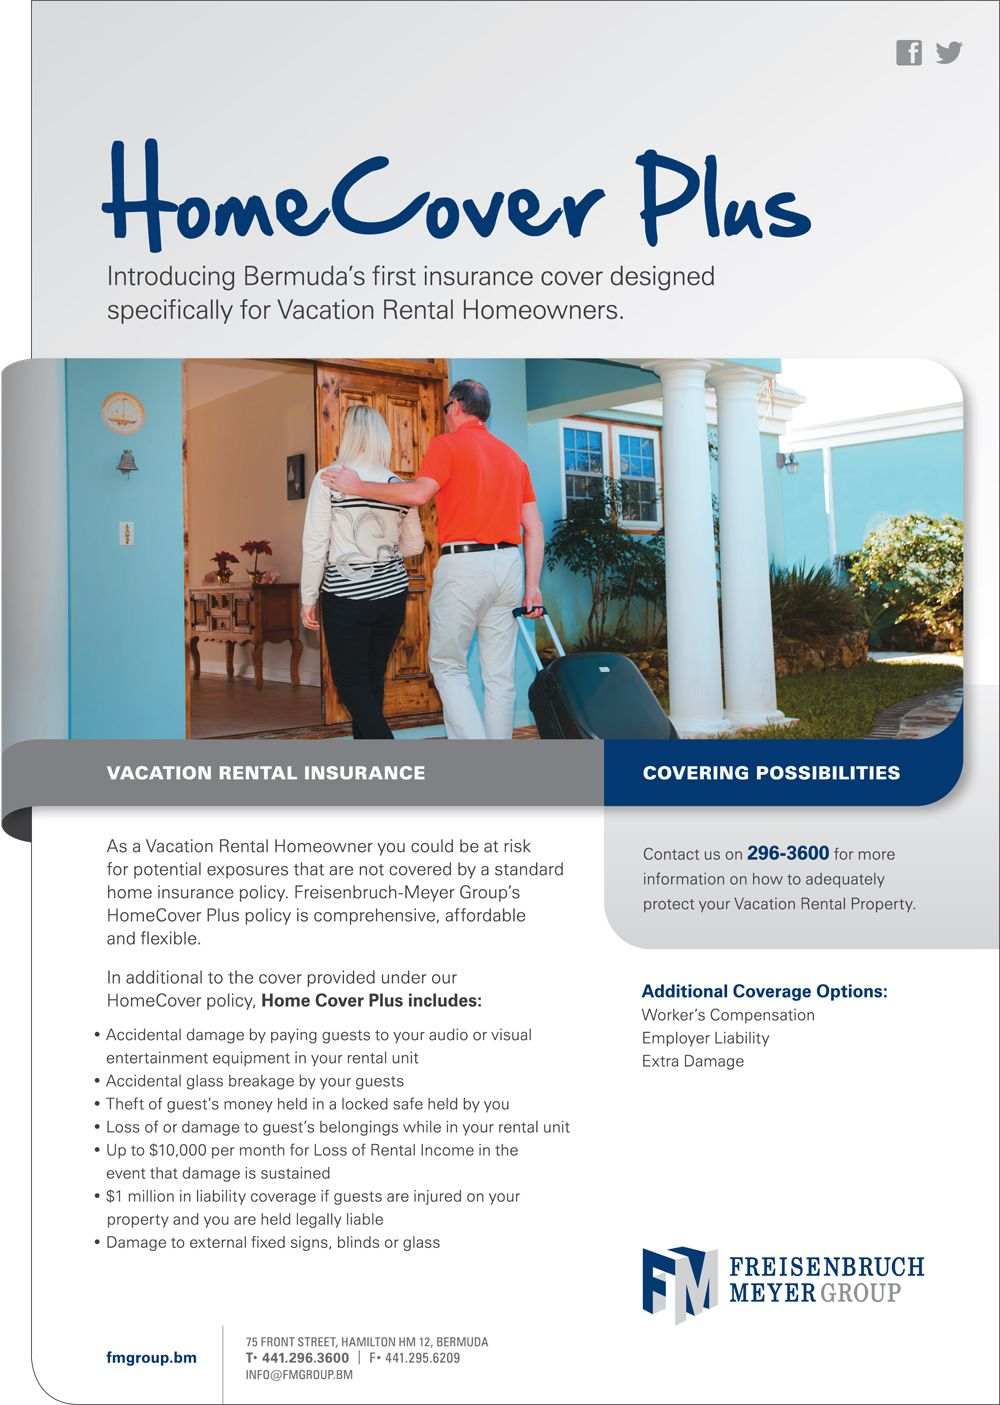 fres-meyer-homecover-plus